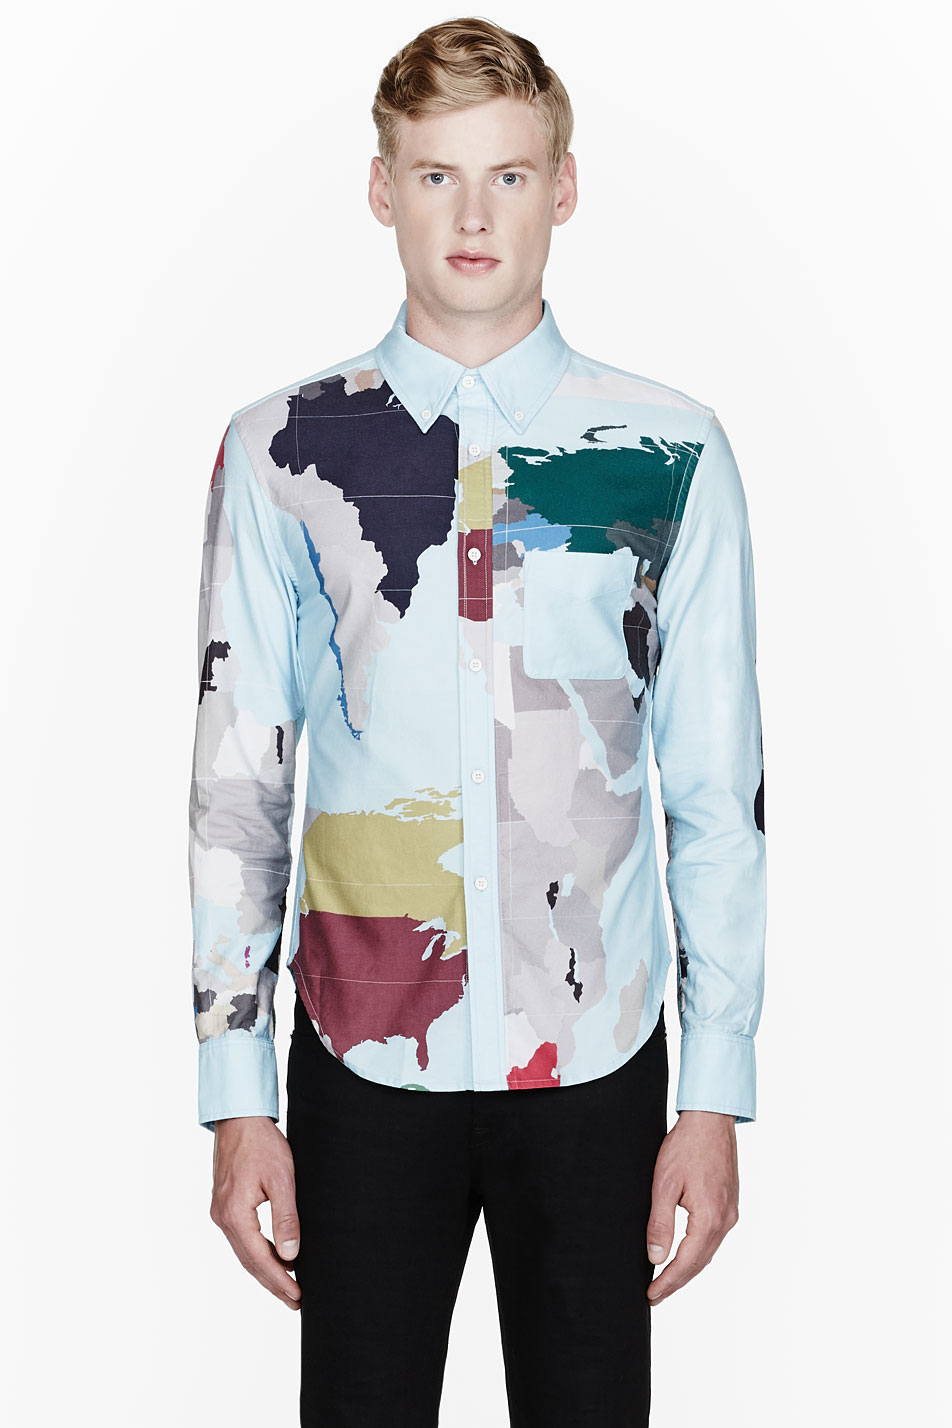 Lyst band of outsiders sky blue world map dress shirt in blue for men gallery gumiabroncs Gallery